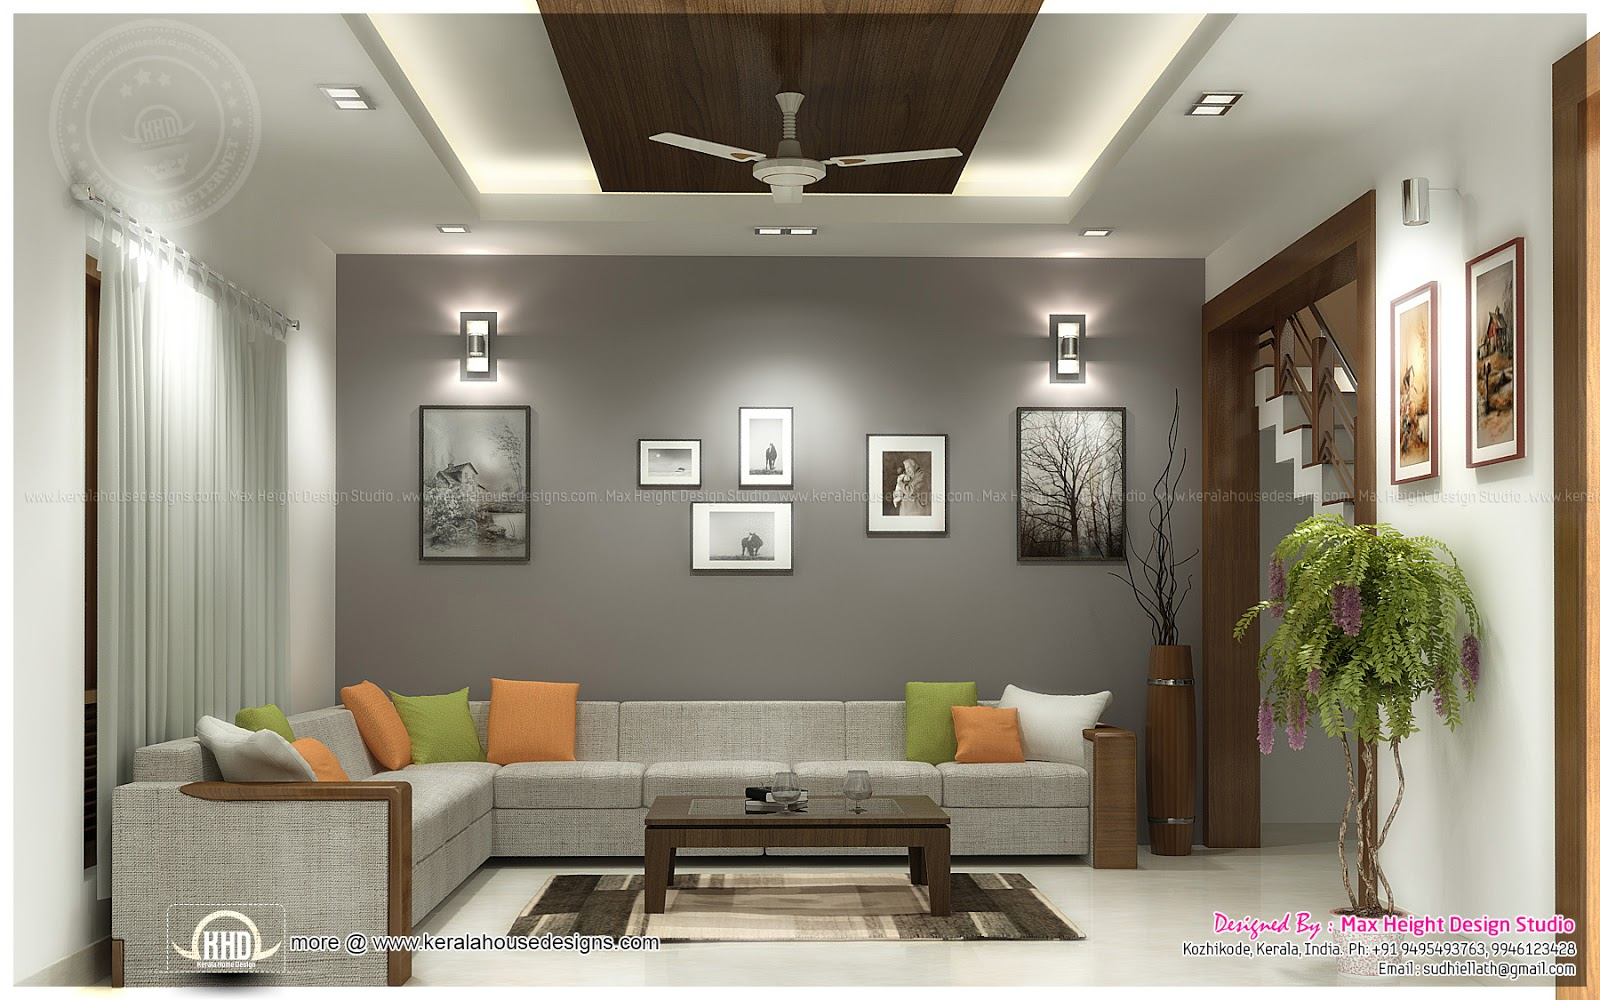 Beautiful interior ideas for home kerala home design and floor plans - House interior designs ...